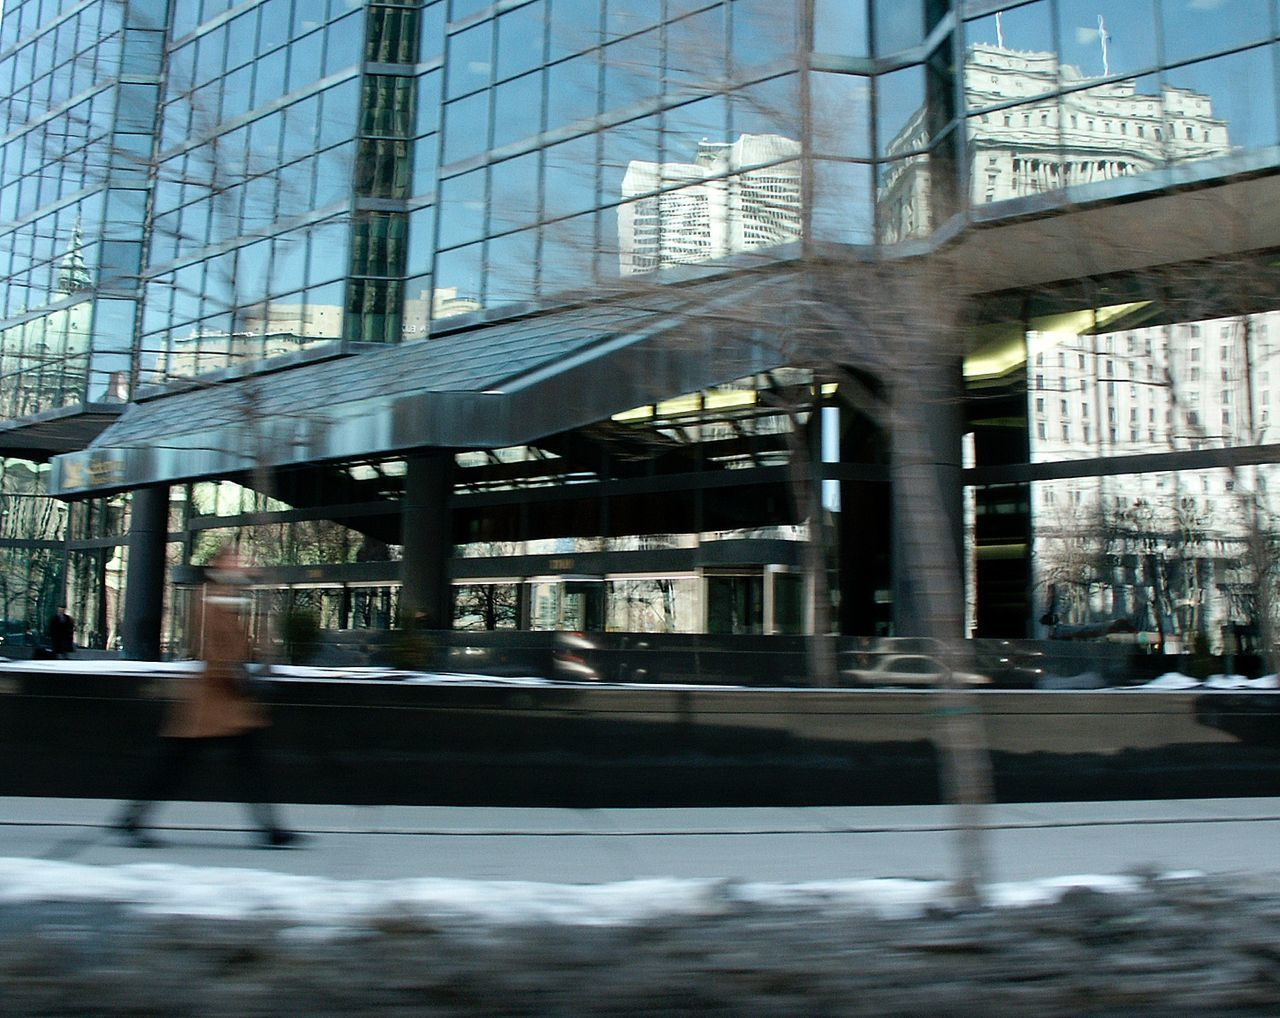 Affluent Architecture Booming Business Center City Life Financial Center Financial District  Flourishing Market Old And New Architecture Old Town Prosperity Québec Canada Ready For Business Thriving Tourist Attraction  Visiting Wealthy